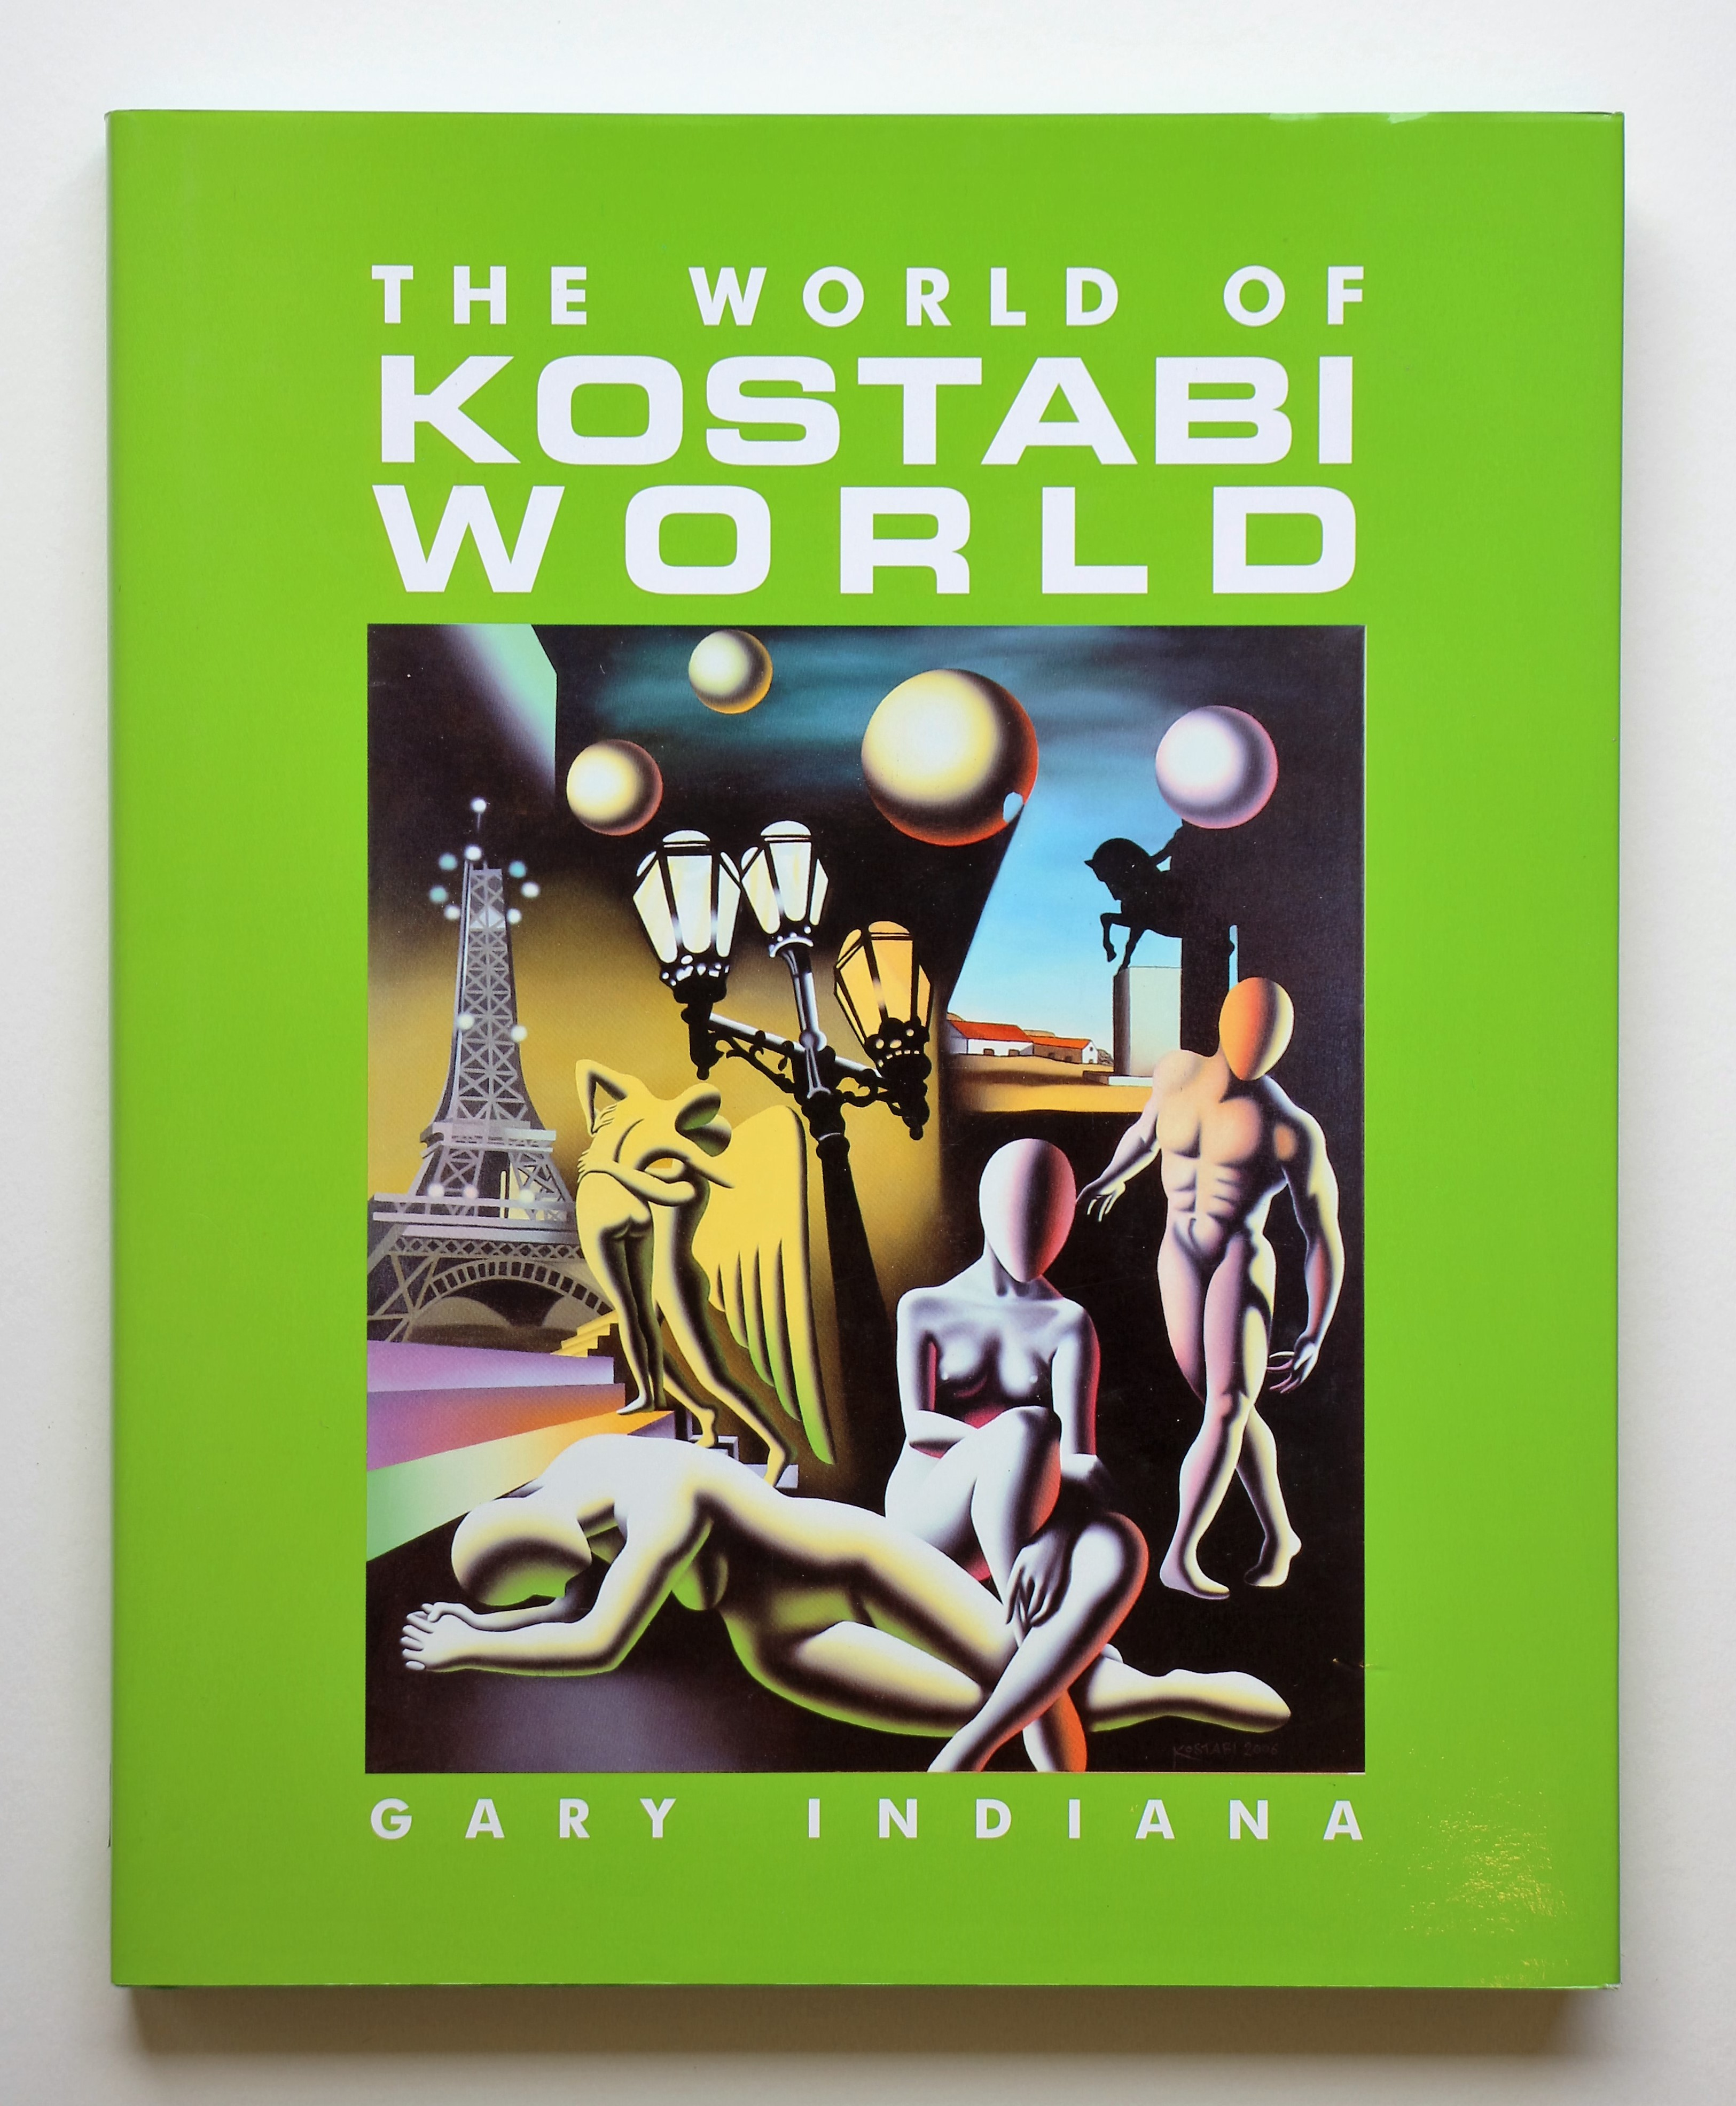 """The world of kostabi world"" anno 2007 pagine 197 cm. 31x25"